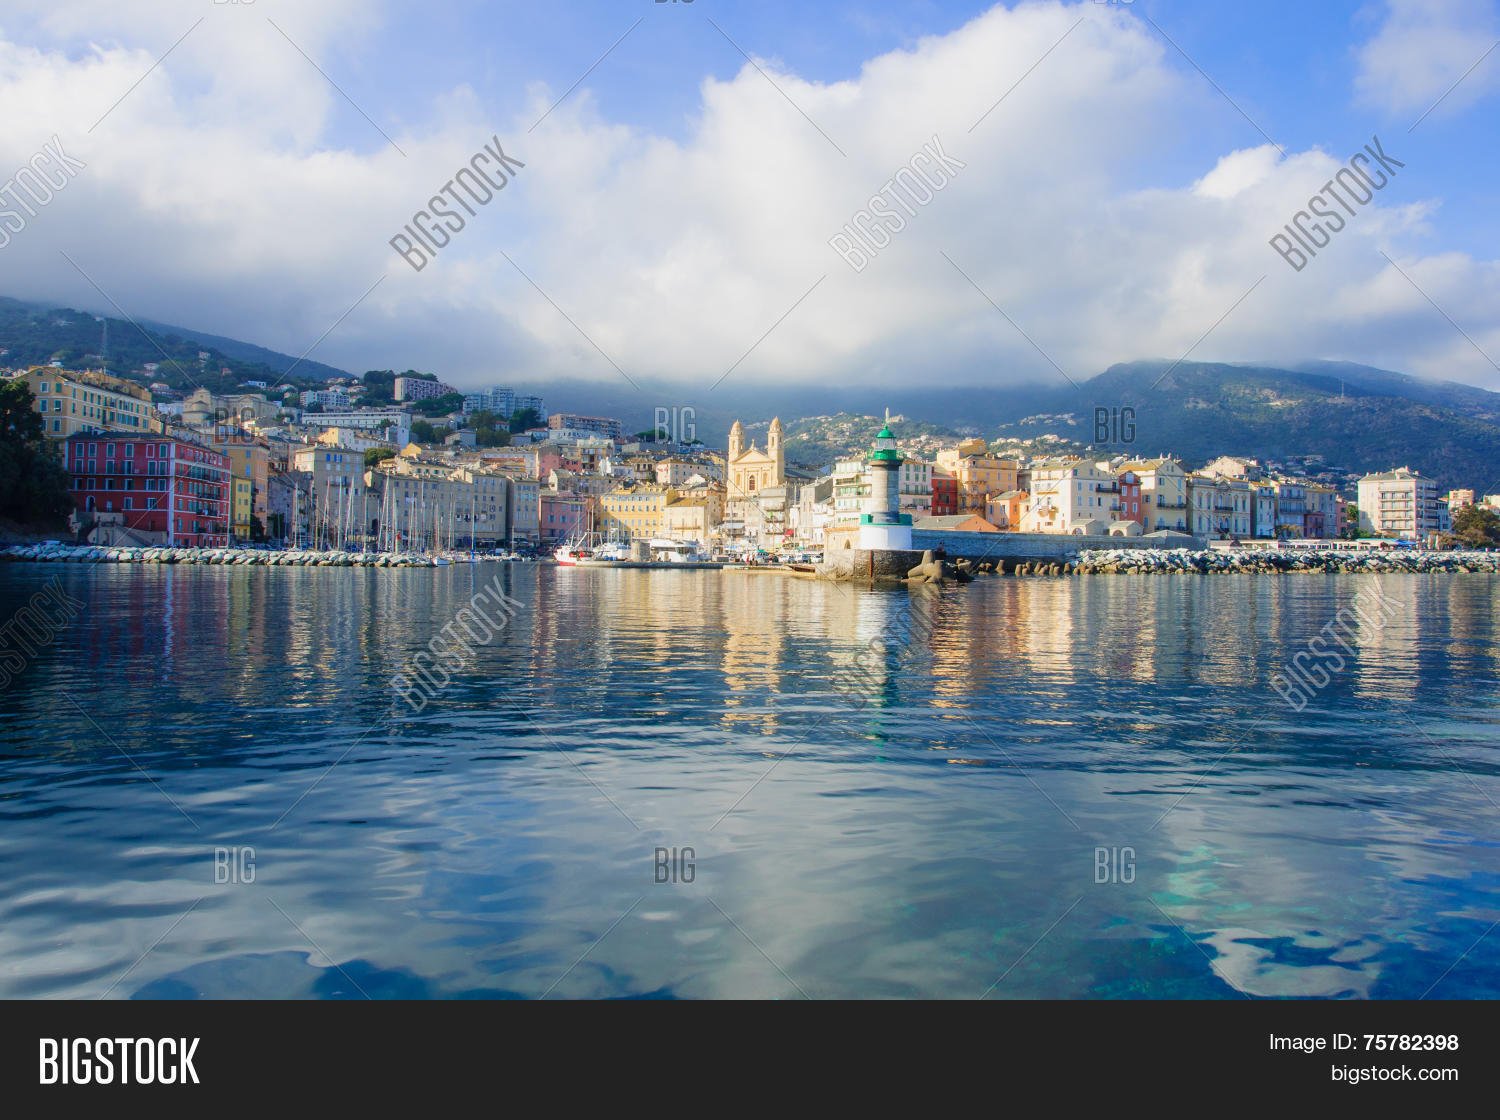 Bastia Vieux Port Image Photo Free Trial Bigstock